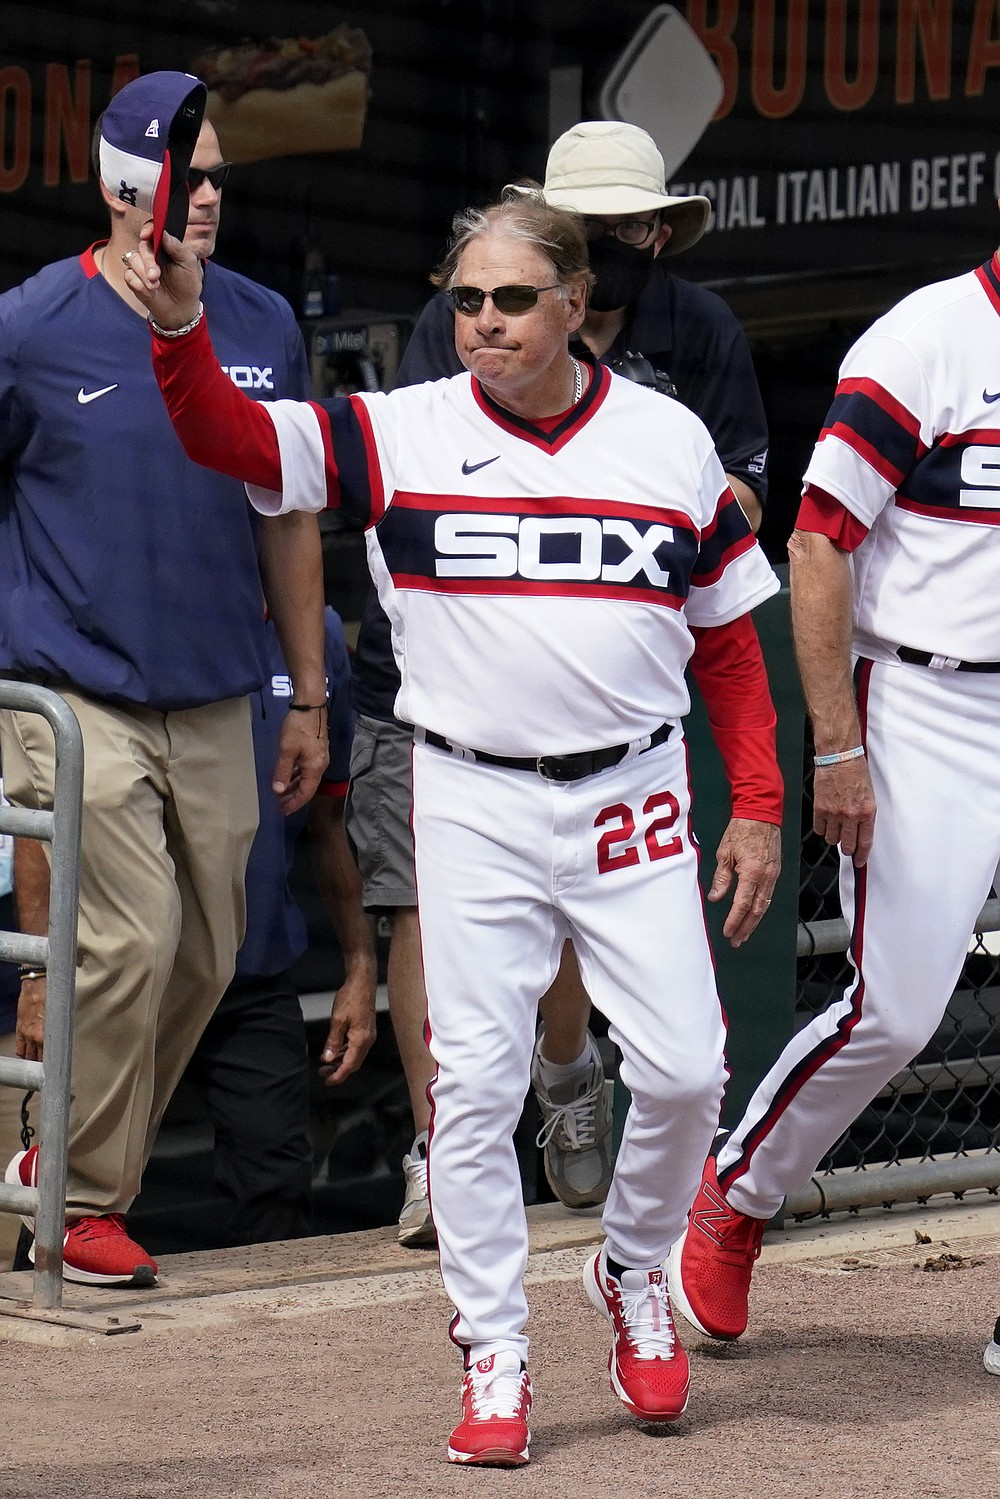 Chicago White Sox manager Tony La Russa waves to fans after his team defeated the Detroit Tigers in a baseball game in Chicago, Sunday, June 6, 2021. La Russa is second on the managerial career wins list with 2,764. (AP Photo/Nam Y. Huh)